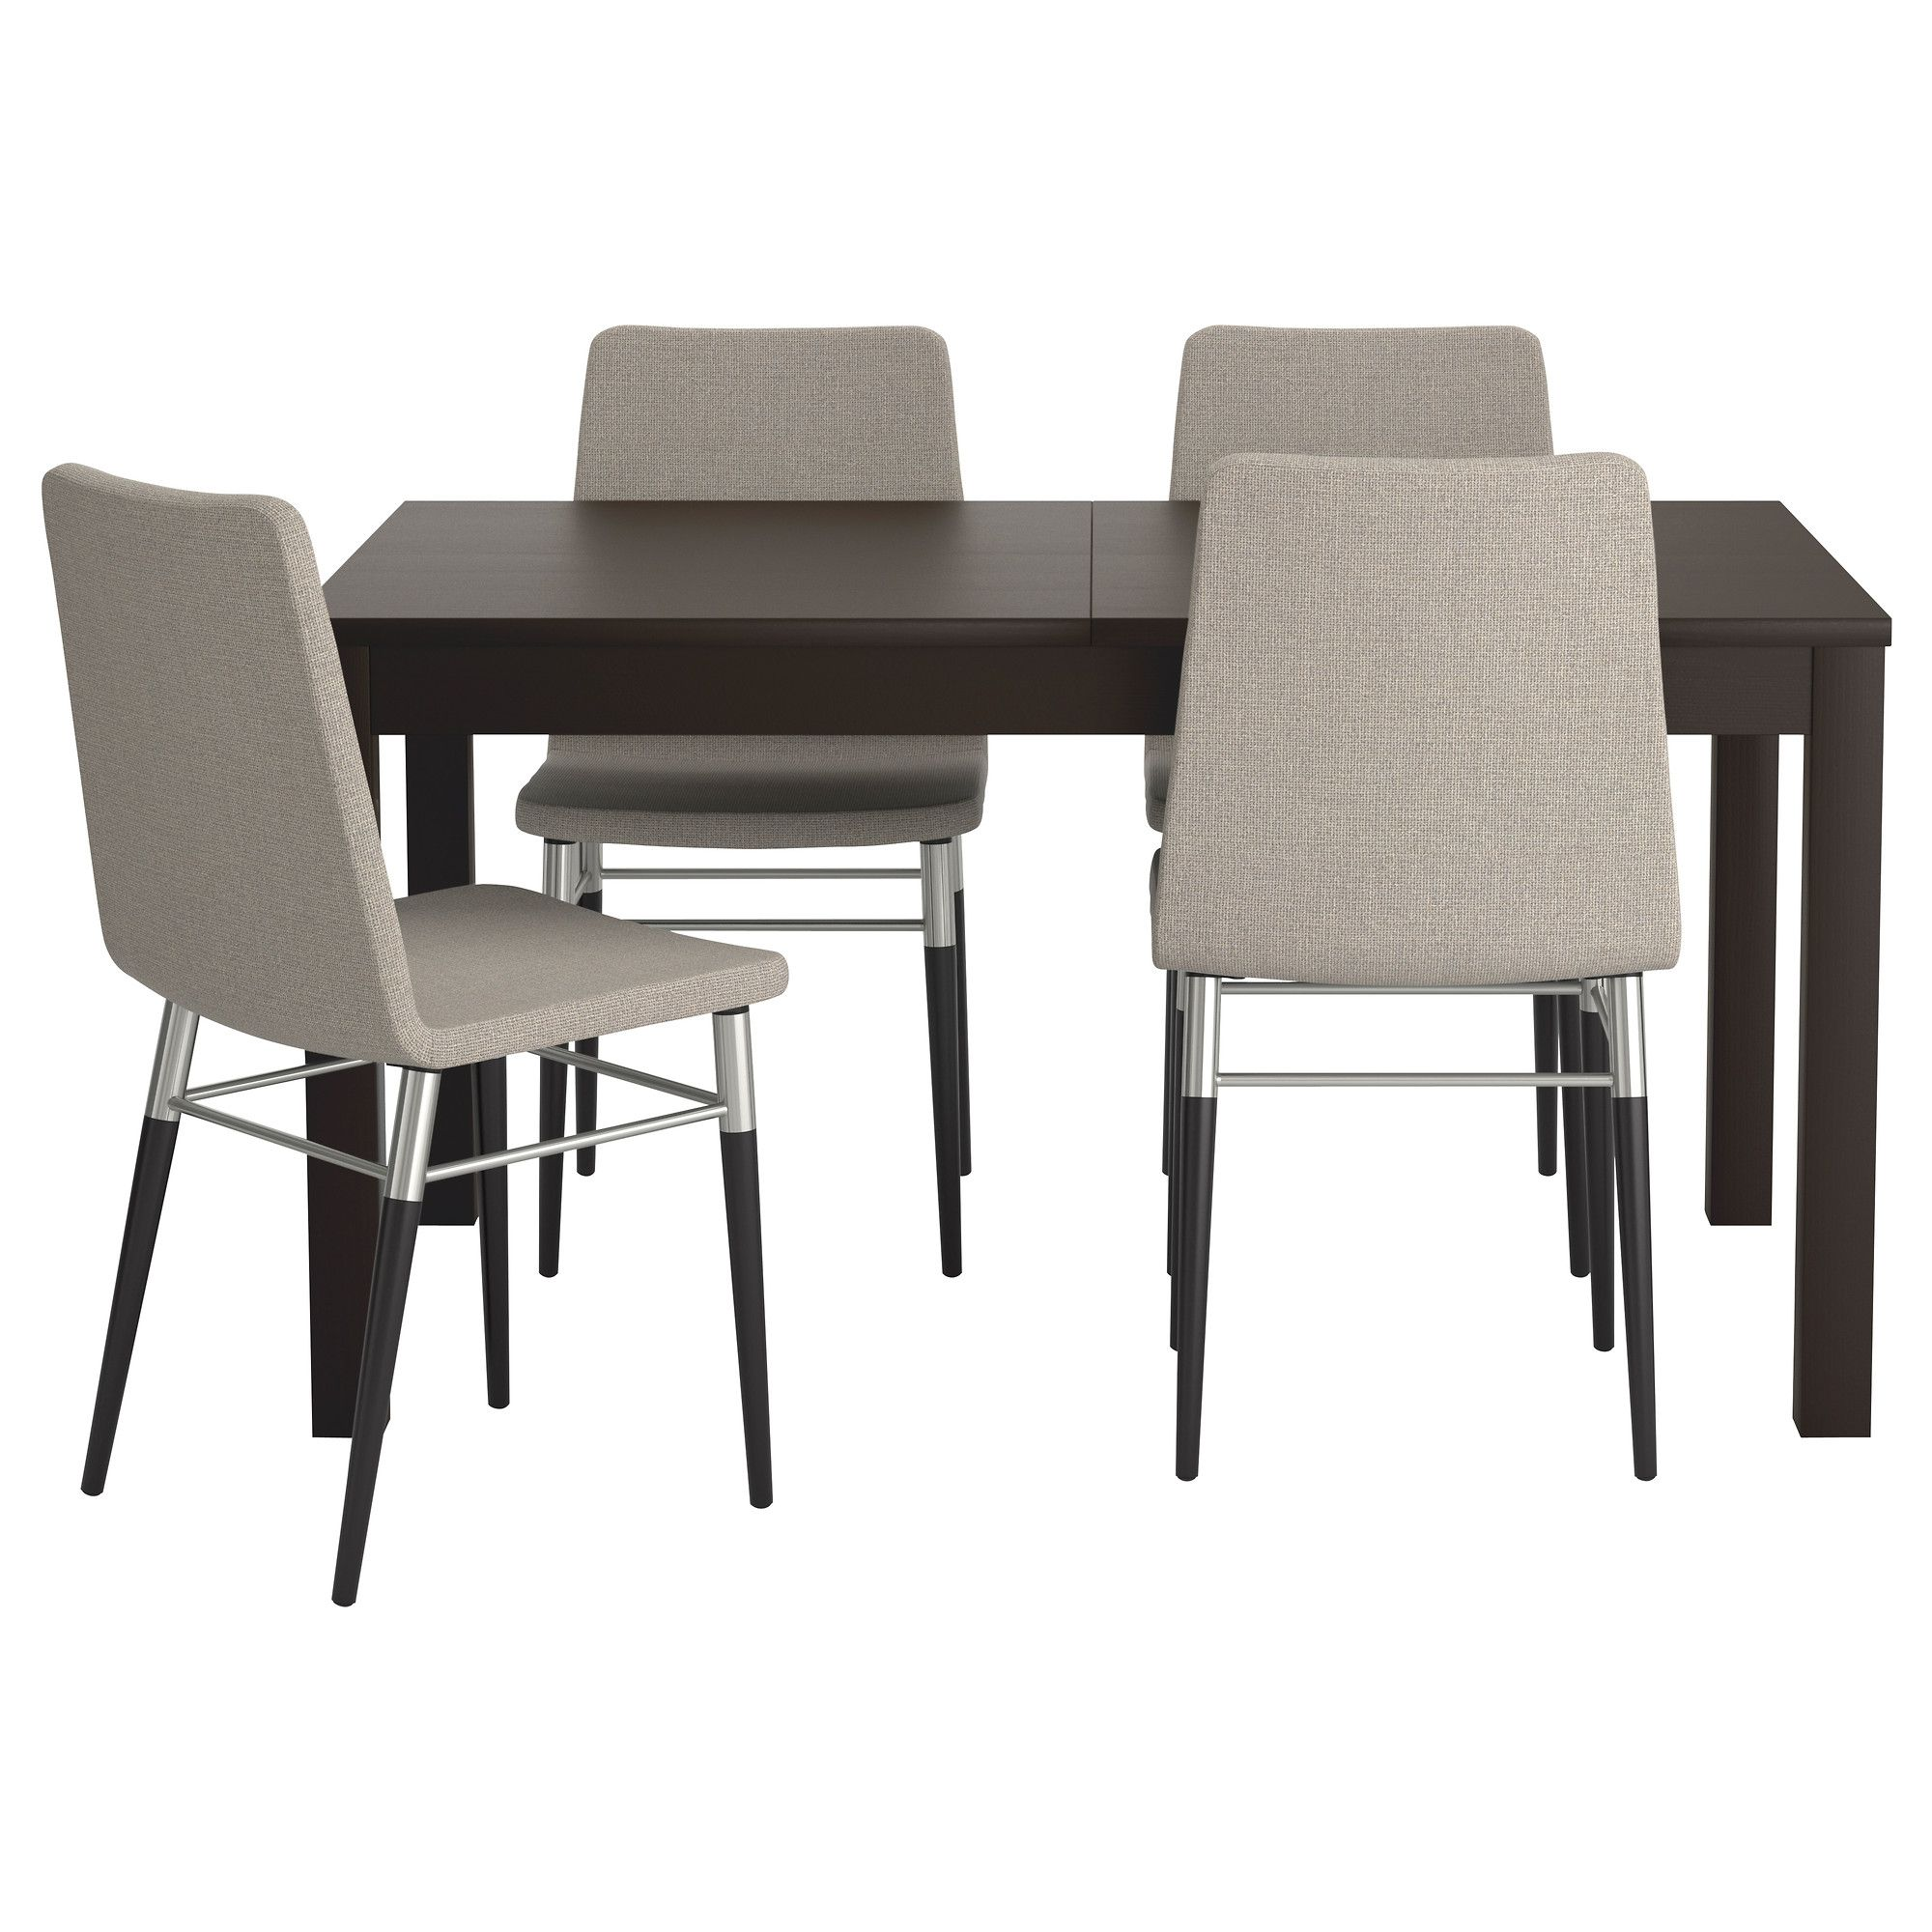 Bjursta  Preben Table And 4 Chairs Brownblack Tenö Light Gray Impressive Small Dining Room Sets Ikea Decorating Inspiration